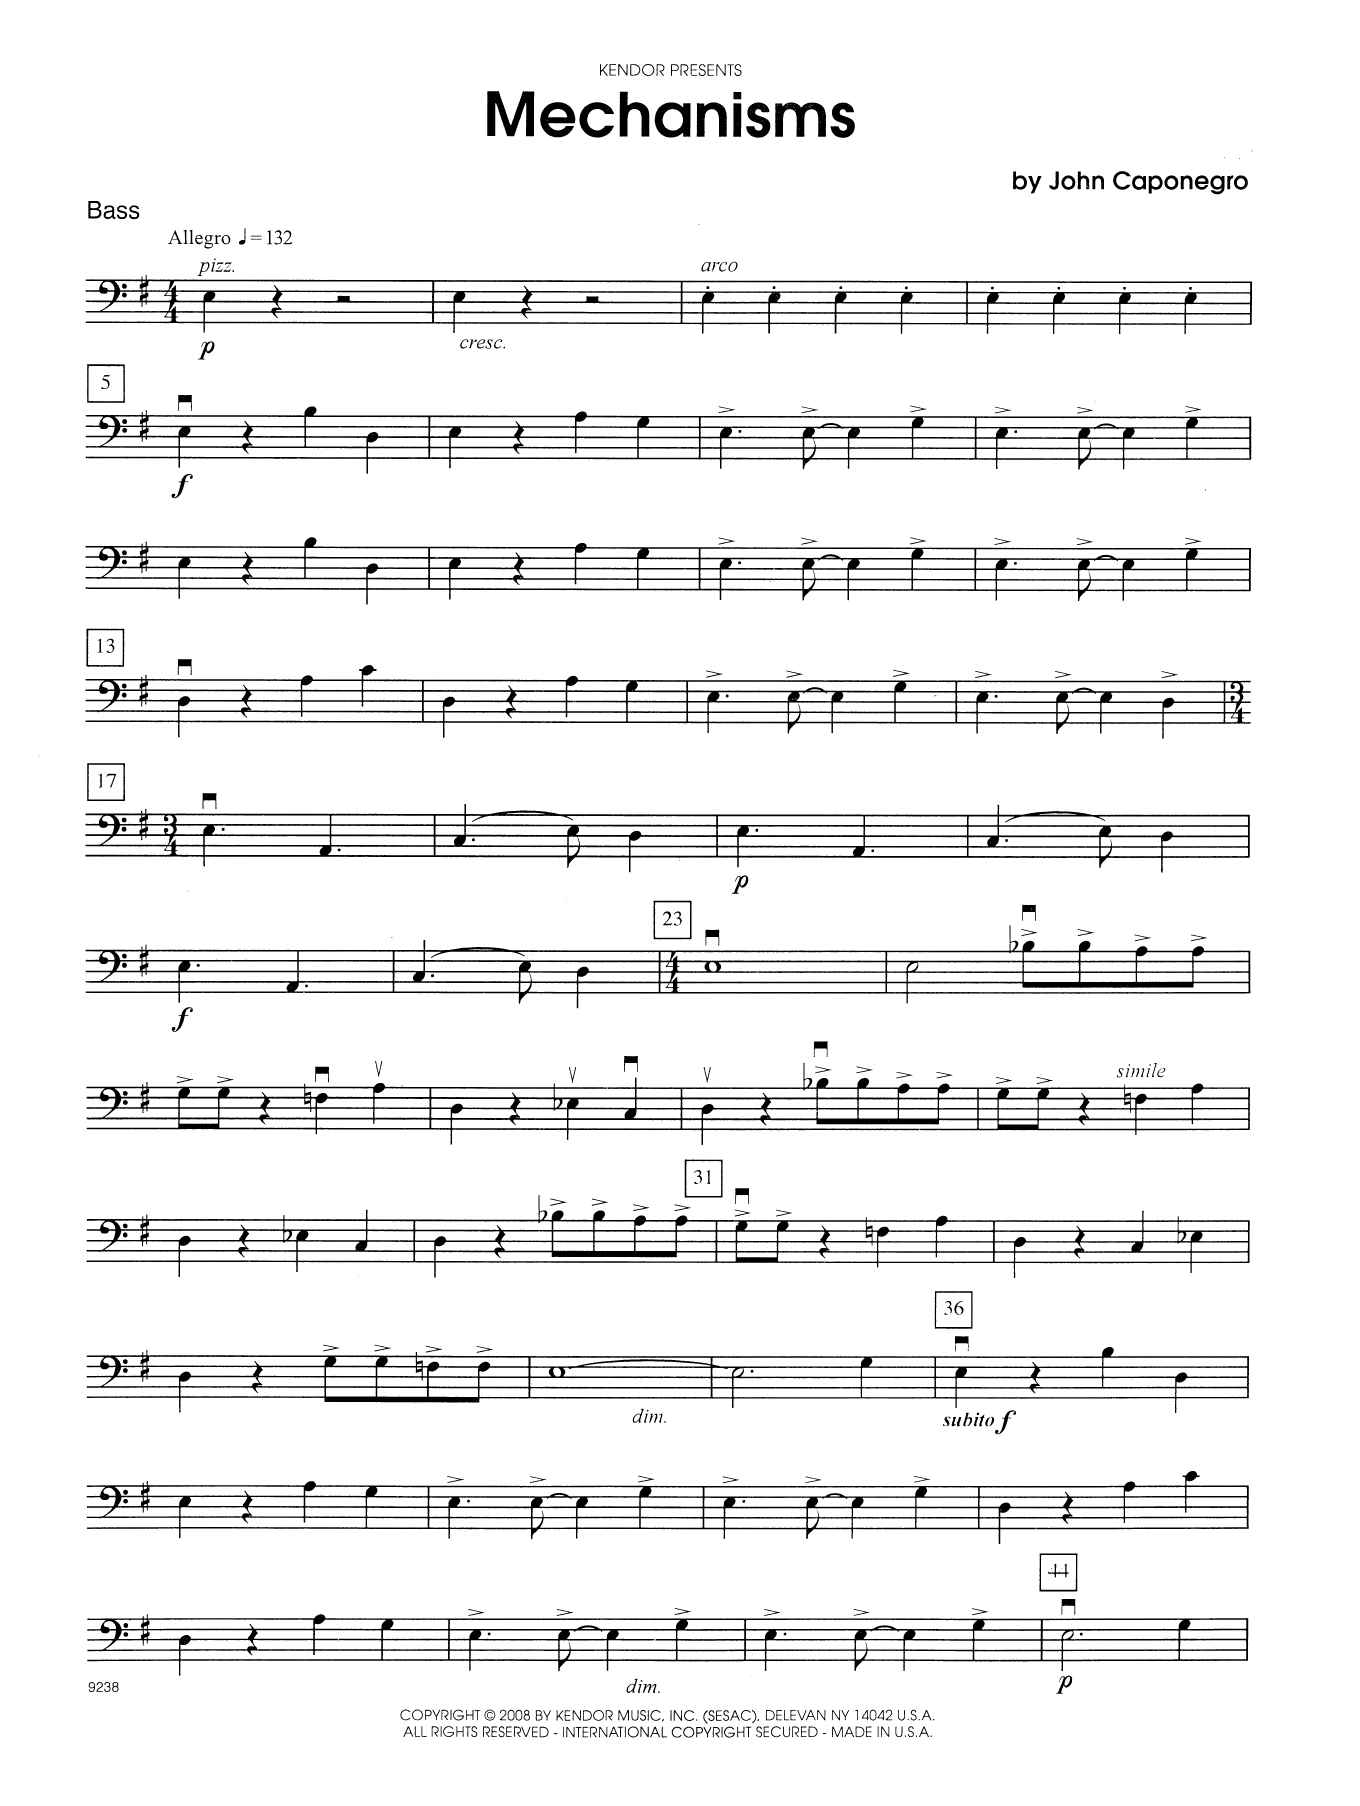 John Caponegro Mechanisms - Bass sheet music notes and chords. Download Printable PDF.